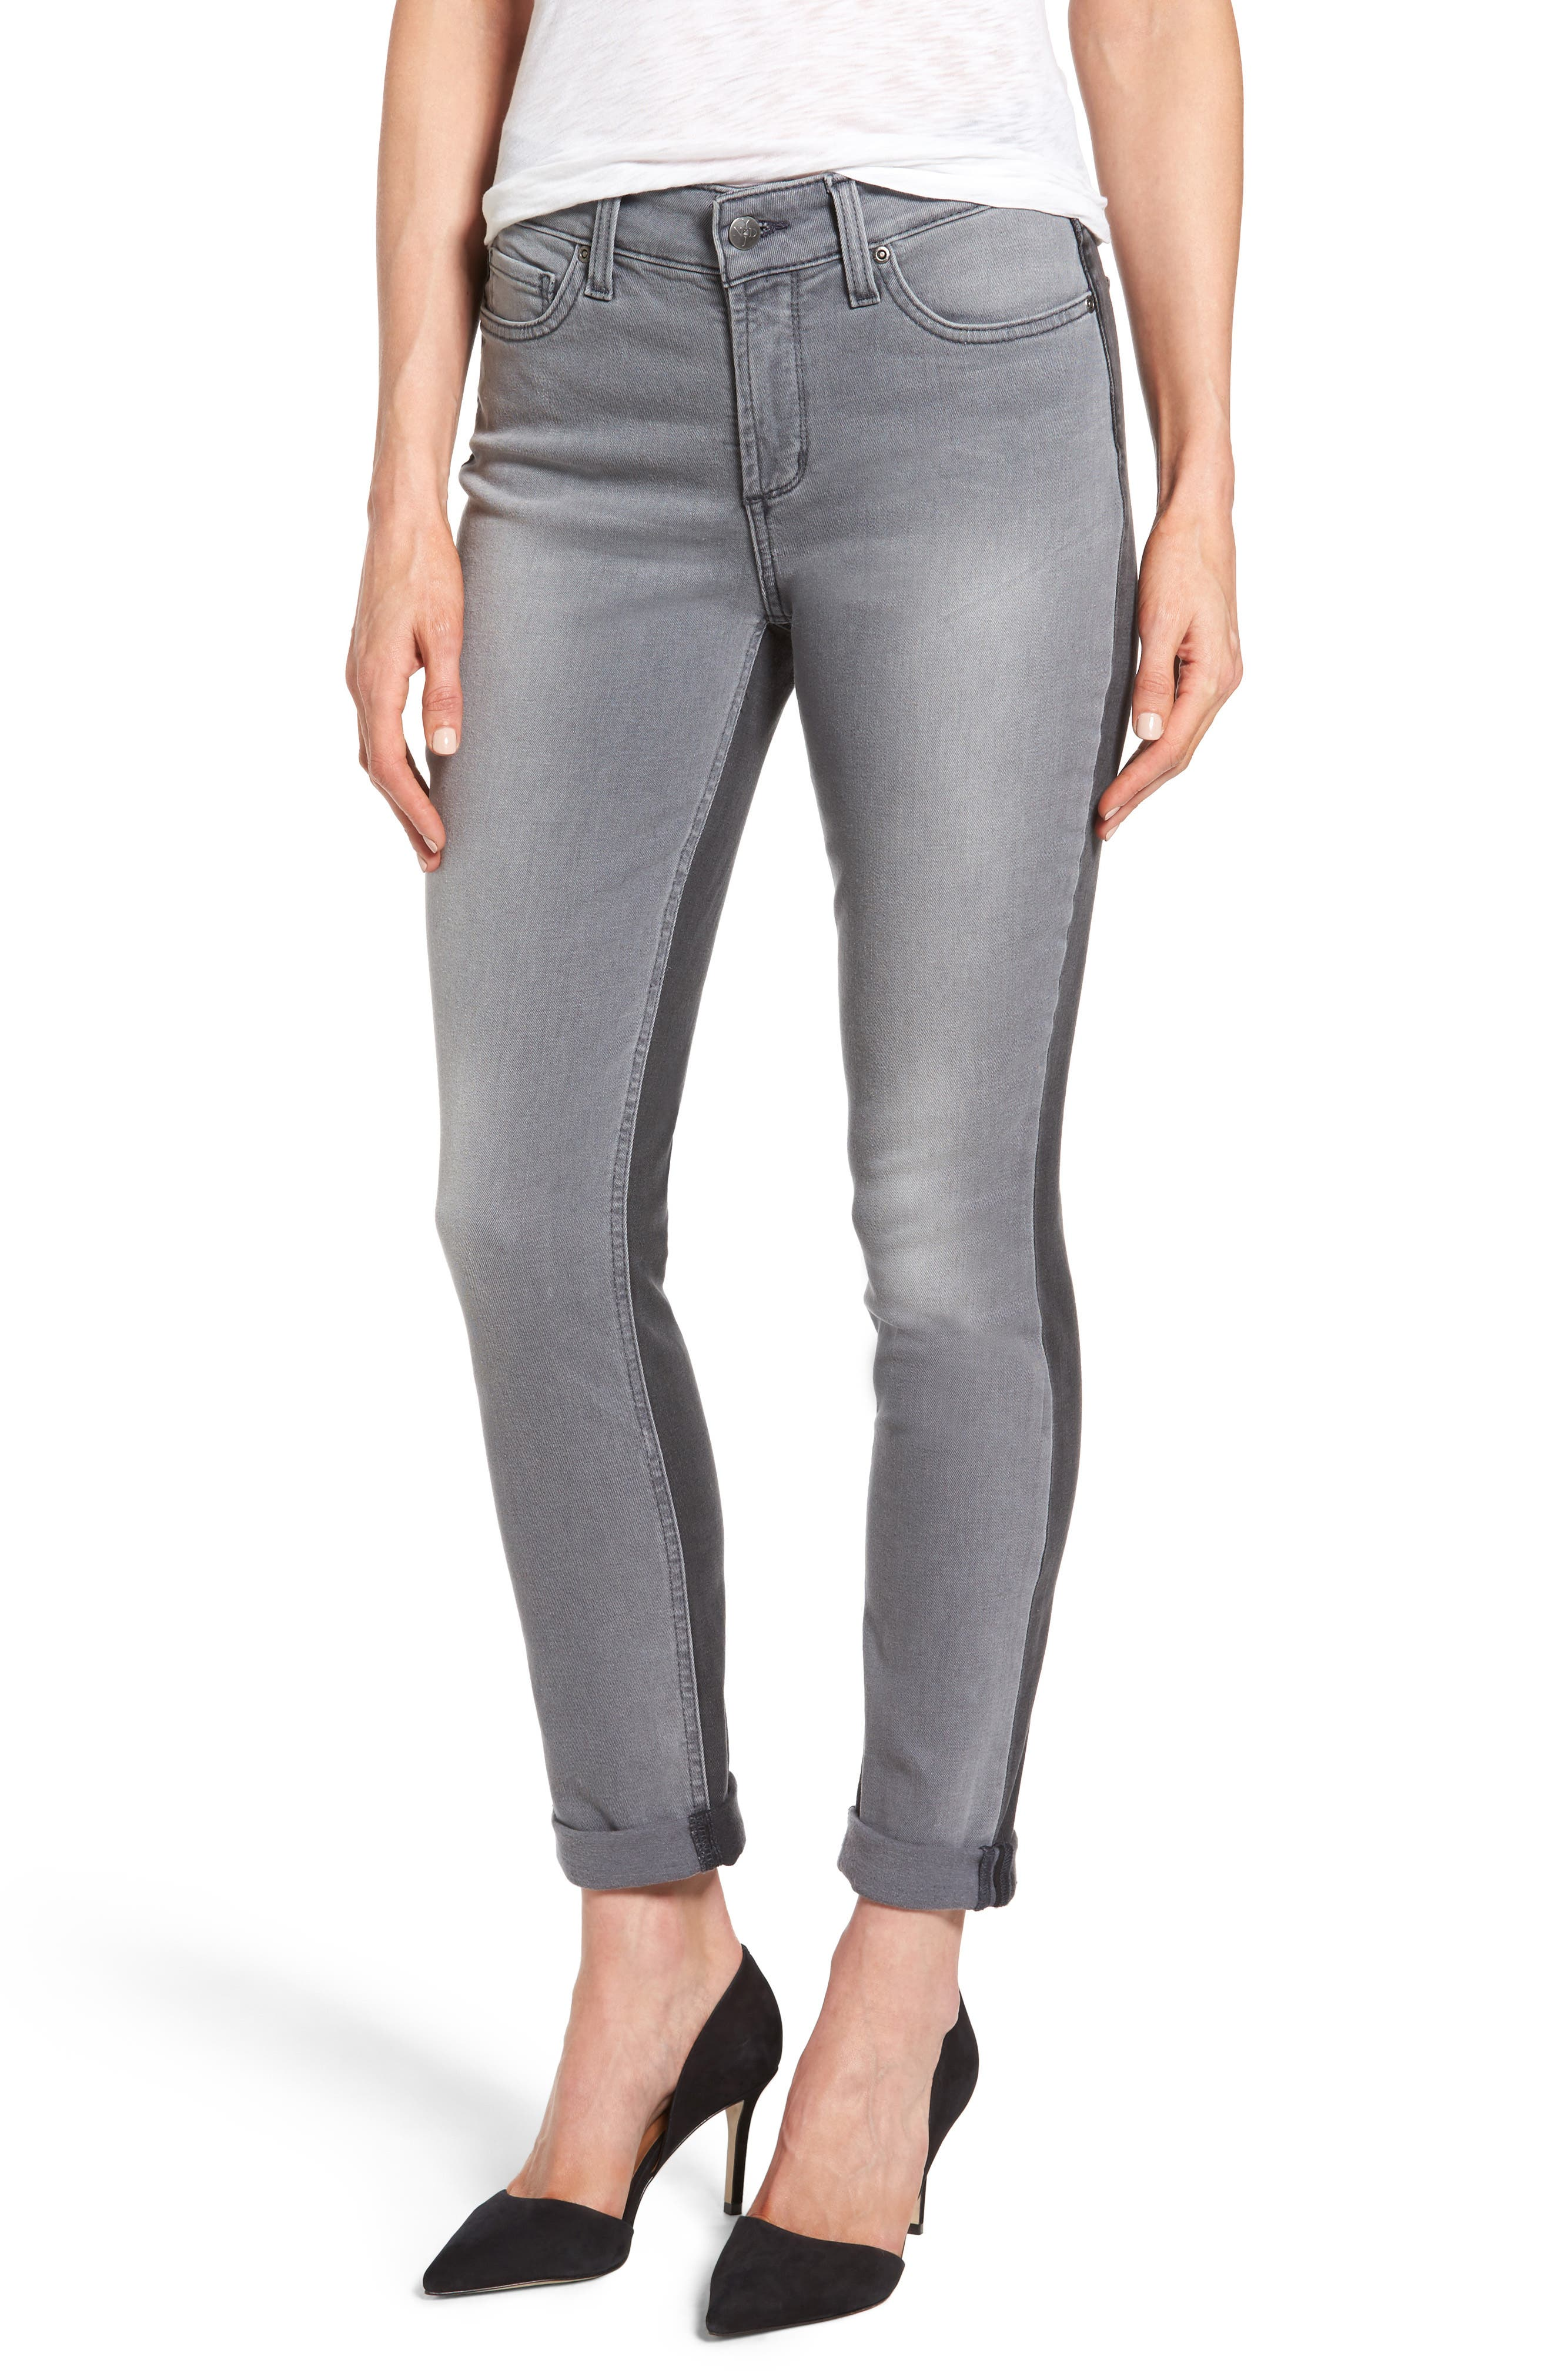 Two Tone Stretch Girlfriend Jeans,                             Main thumbnail 1, color,                             020